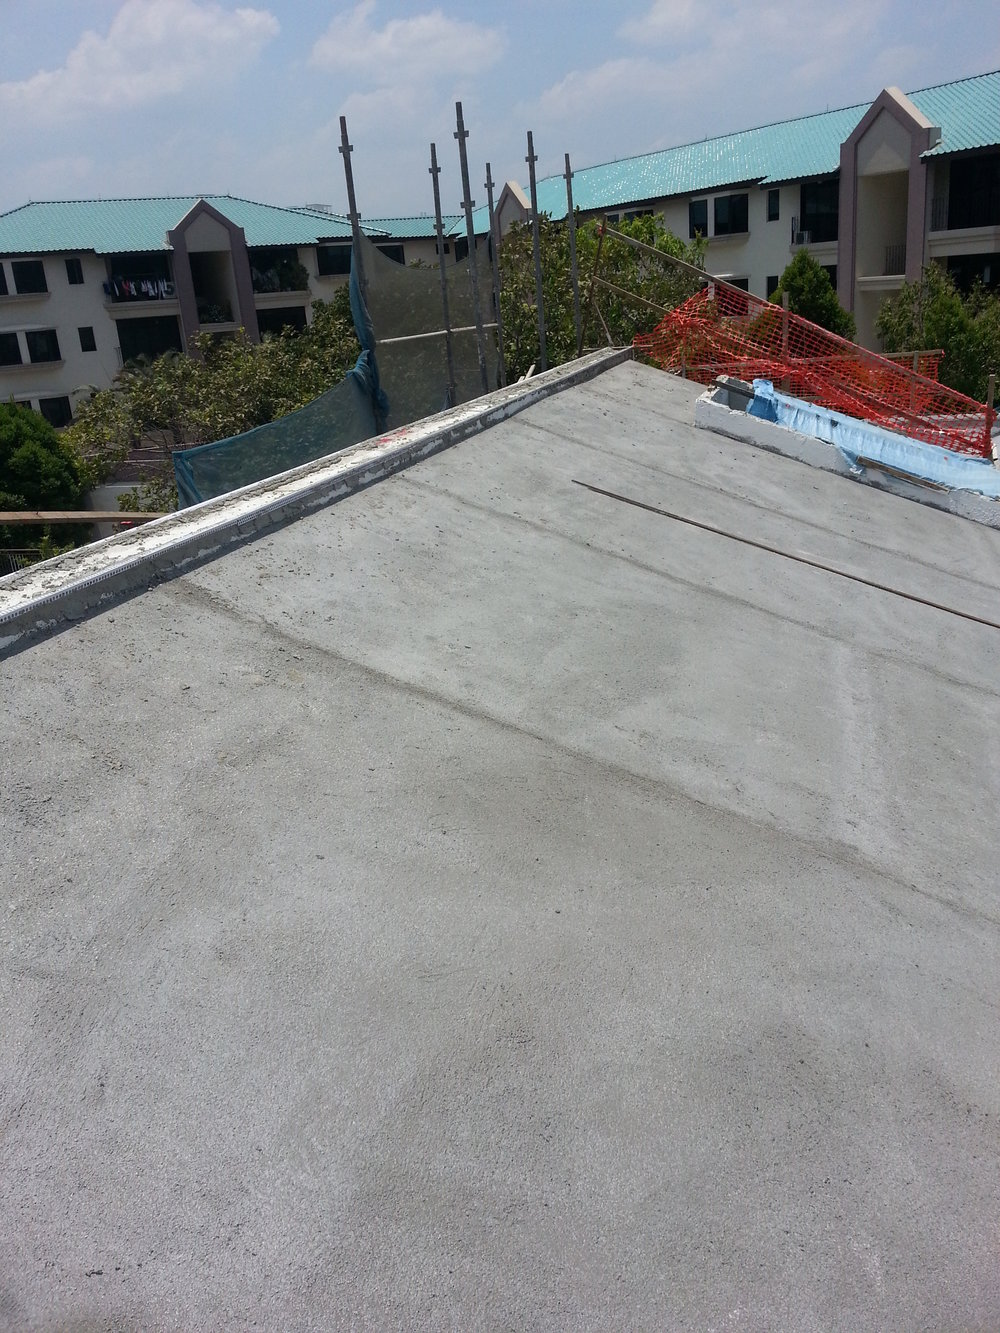 After Cement Sand Screed (Last Layer to Evenly Distribute the Weight Load)